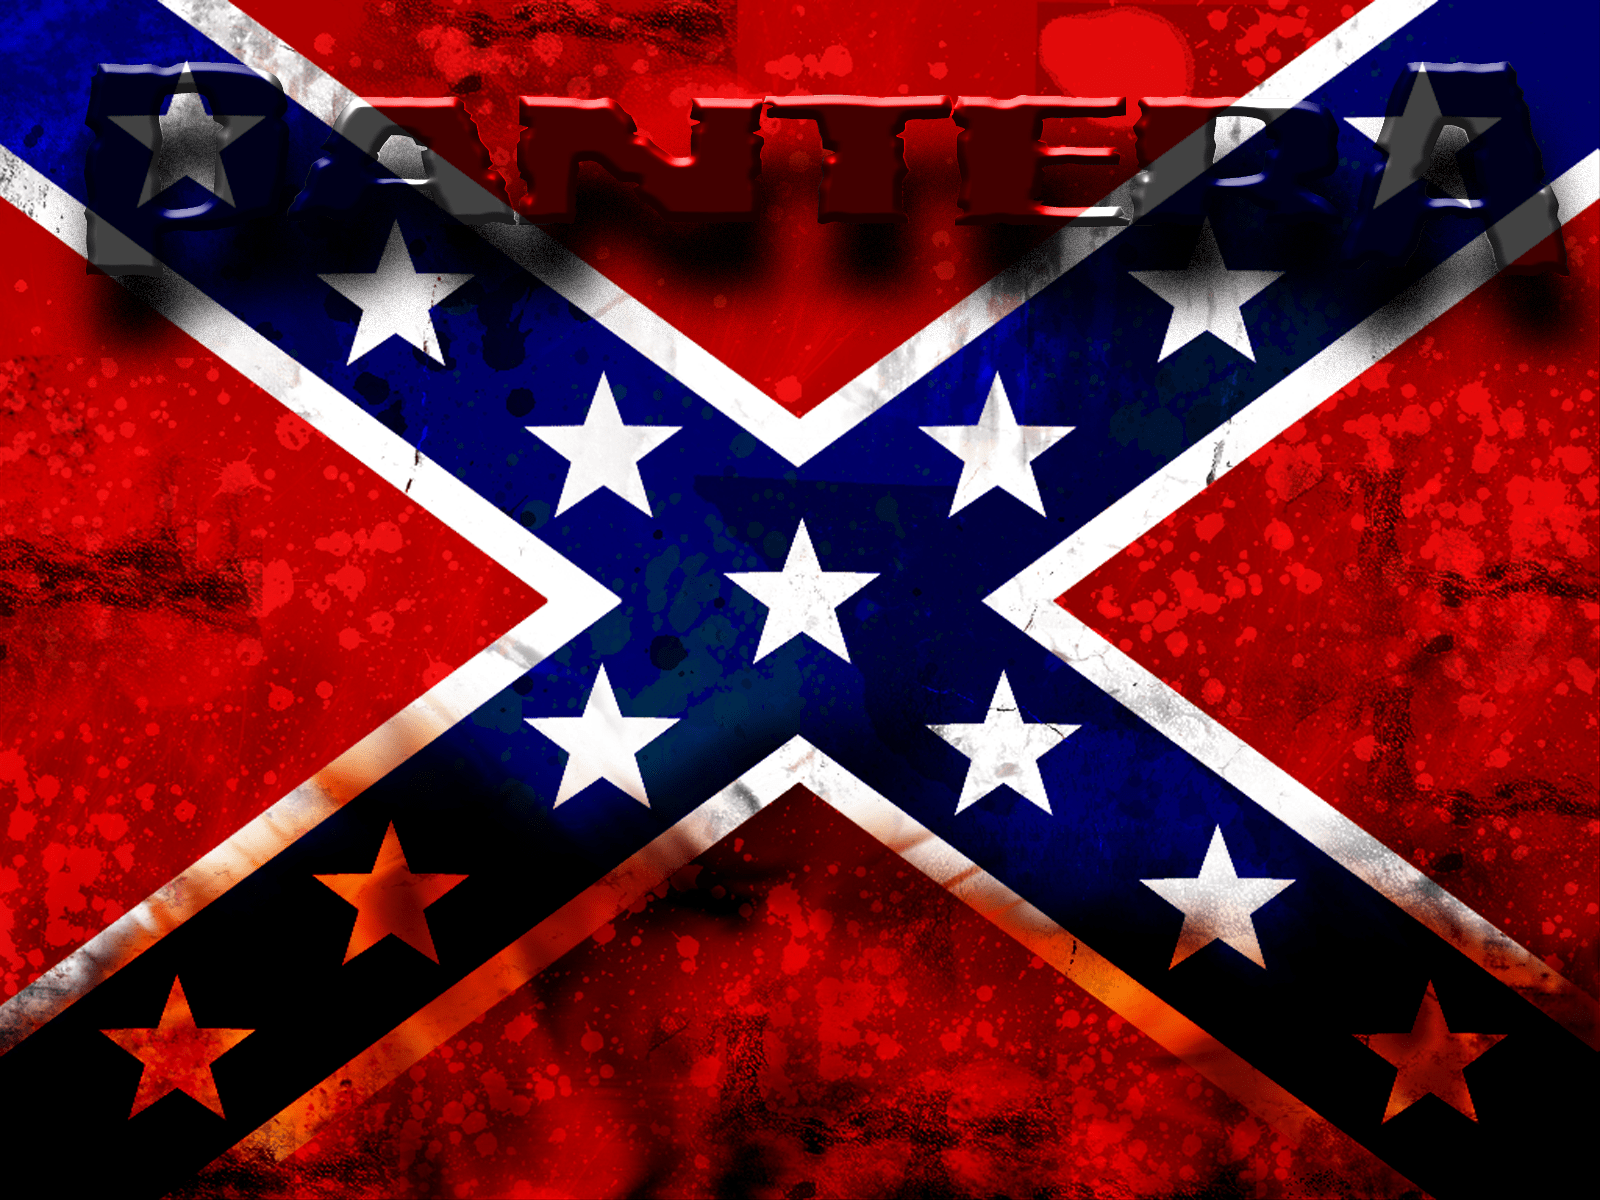 Confederate Flag Wallpaper Hd Pantera Wallpaper And Background Image 1600x1200 Id 179980